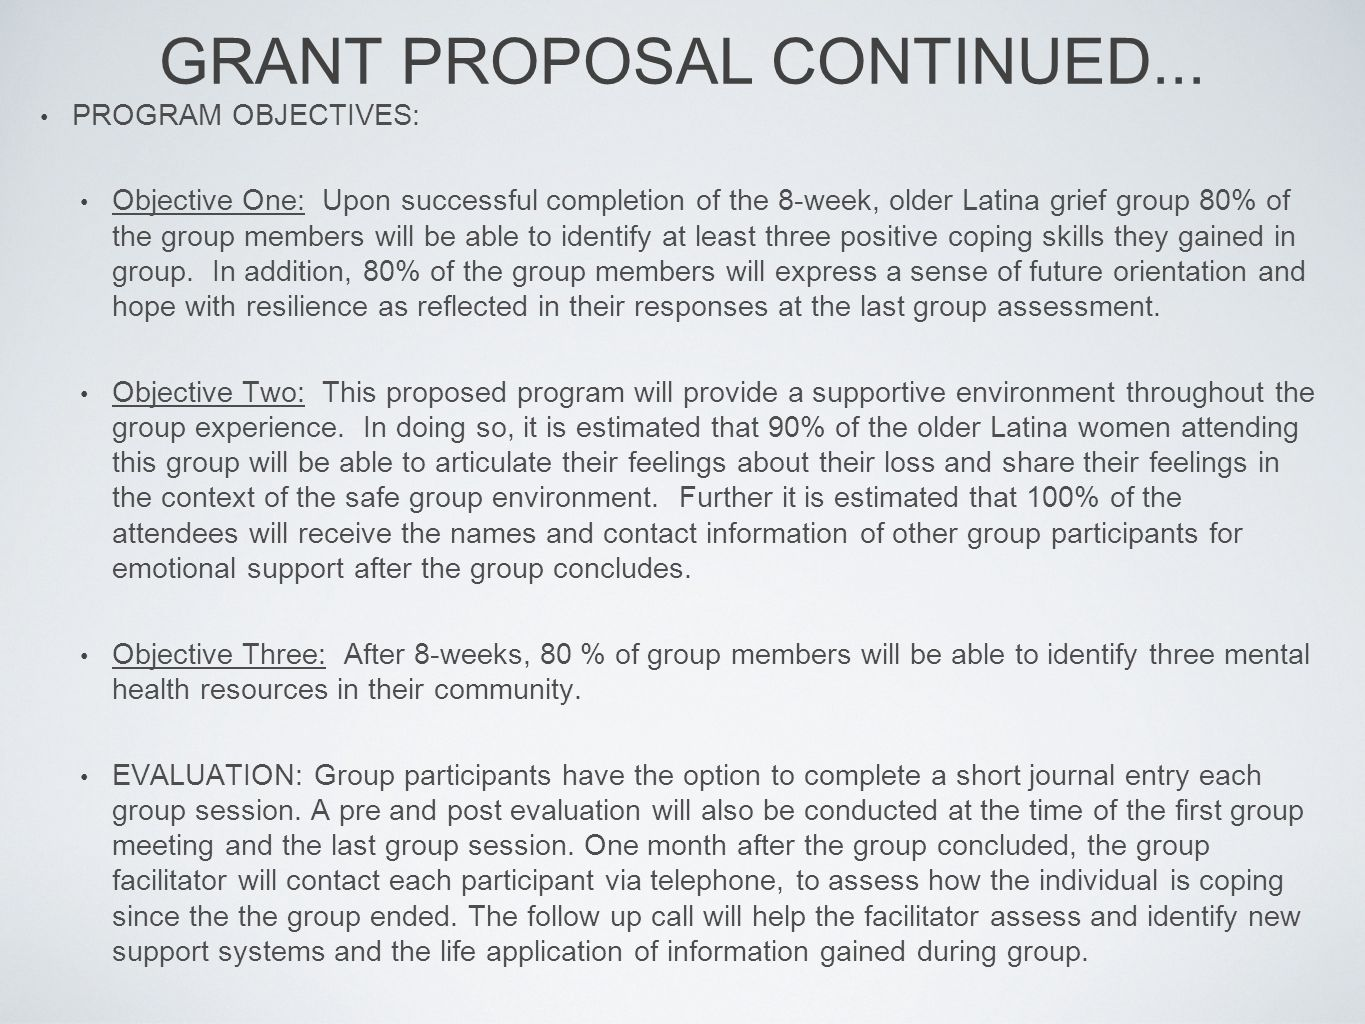 GRANT PROPOSAL CONTINUED...